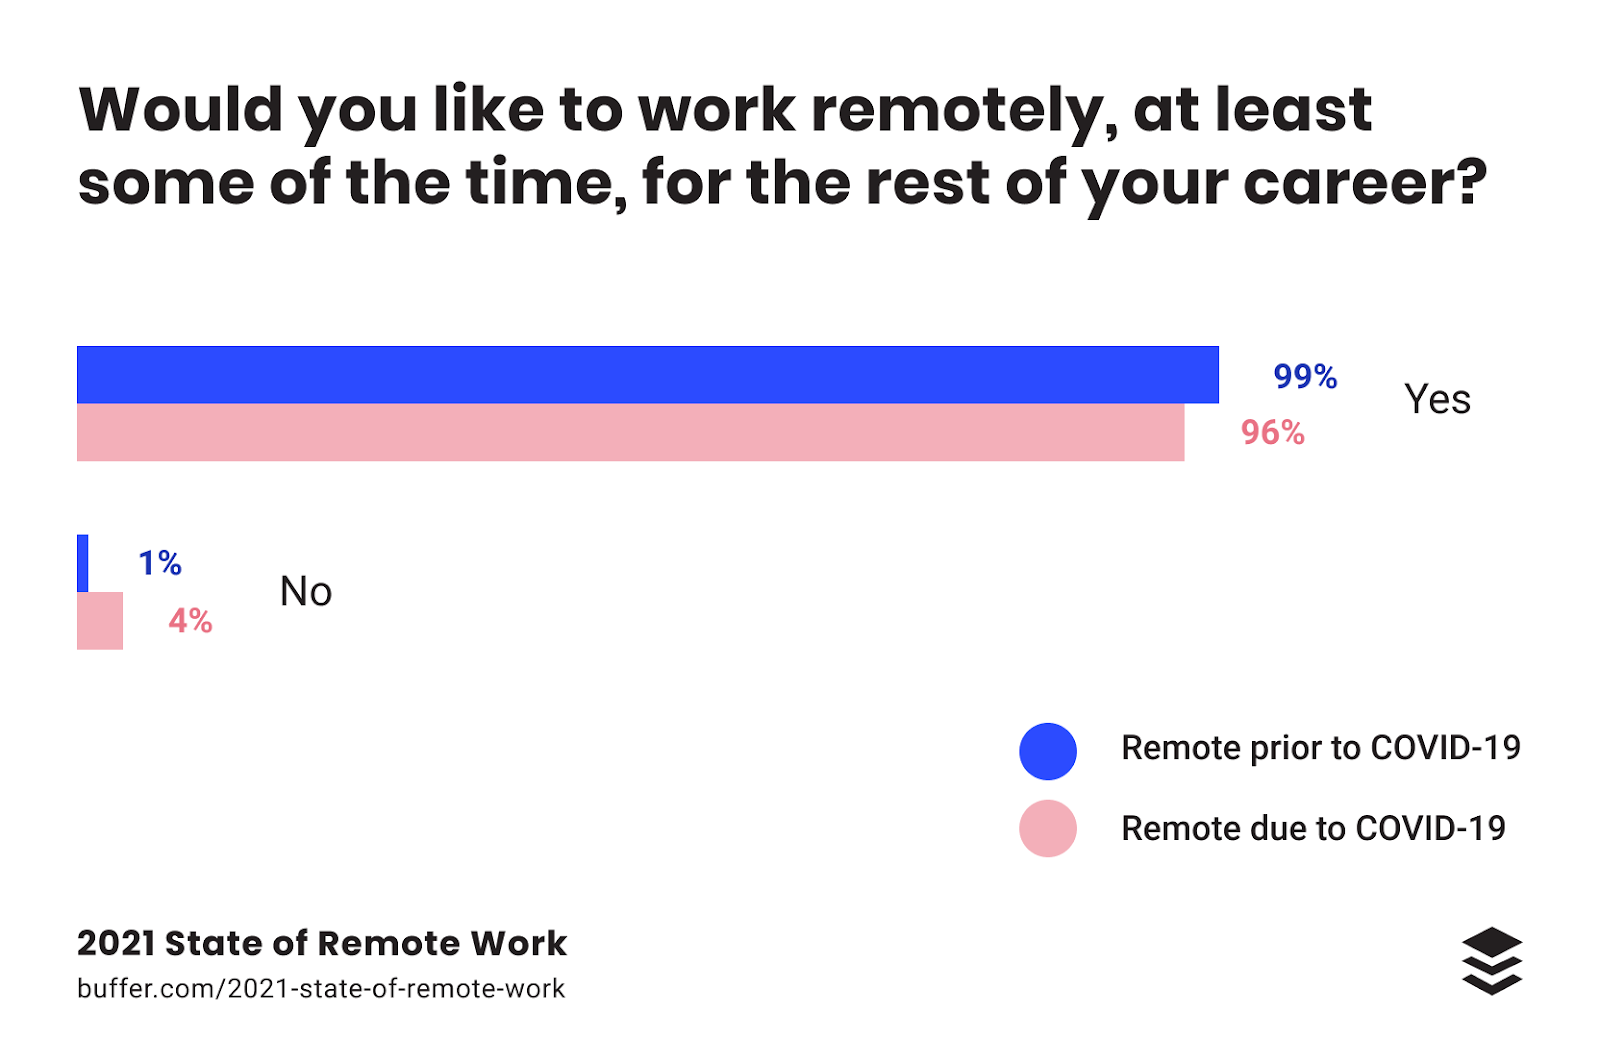 an overwhelming majority of people would like to be remote according to buffer's remote work statistics